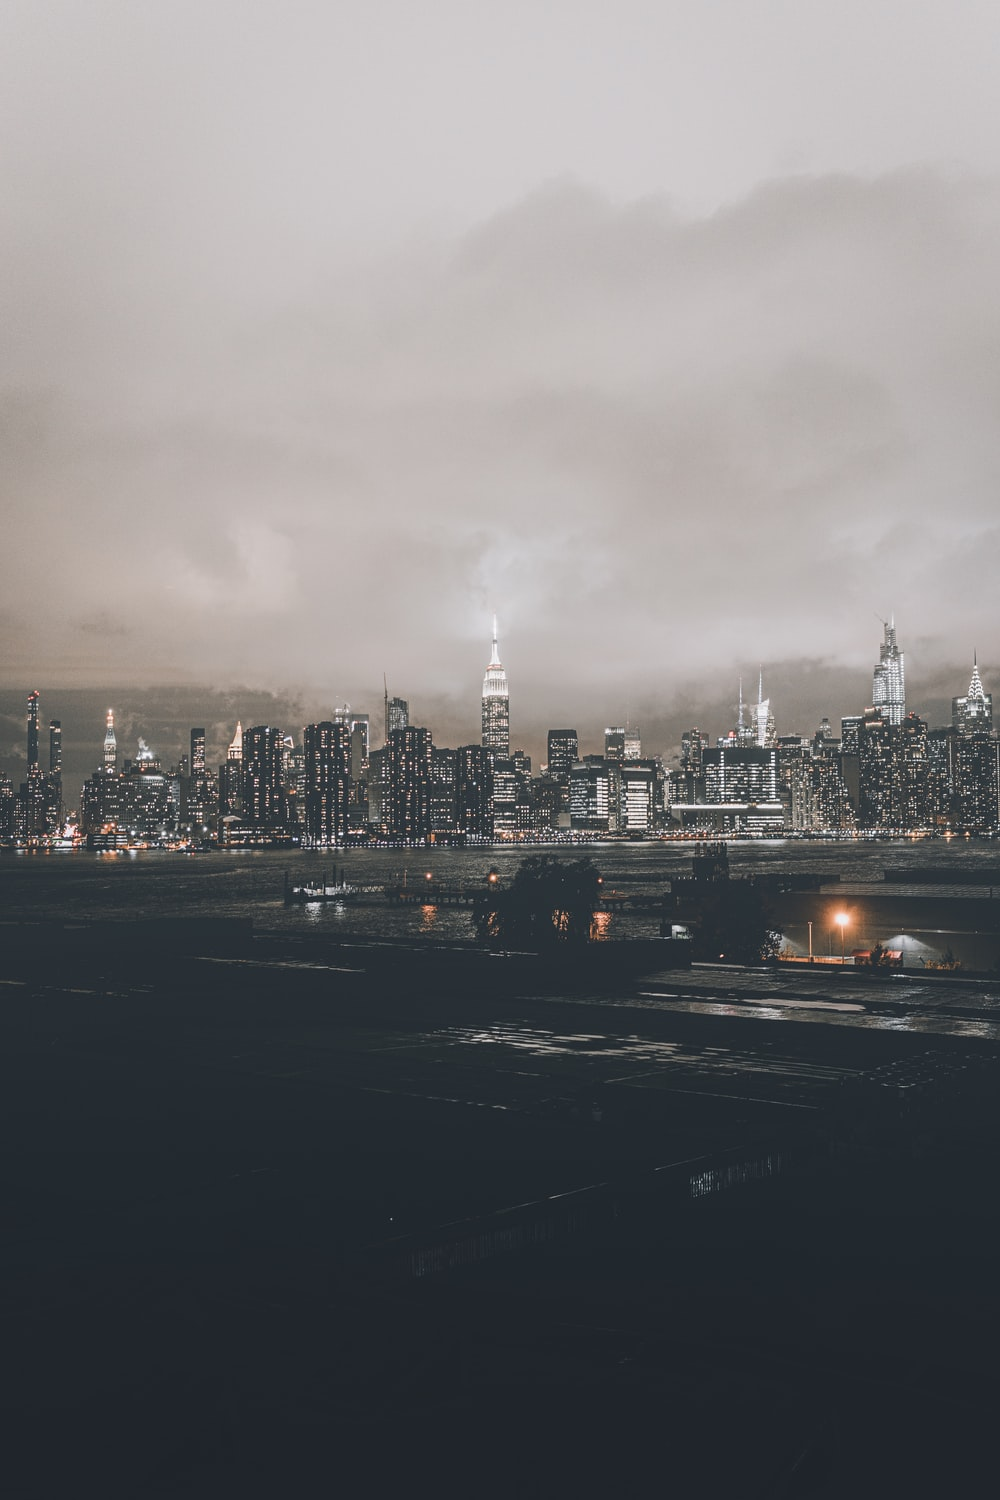 city skyline under gray cloudy sky during daytime